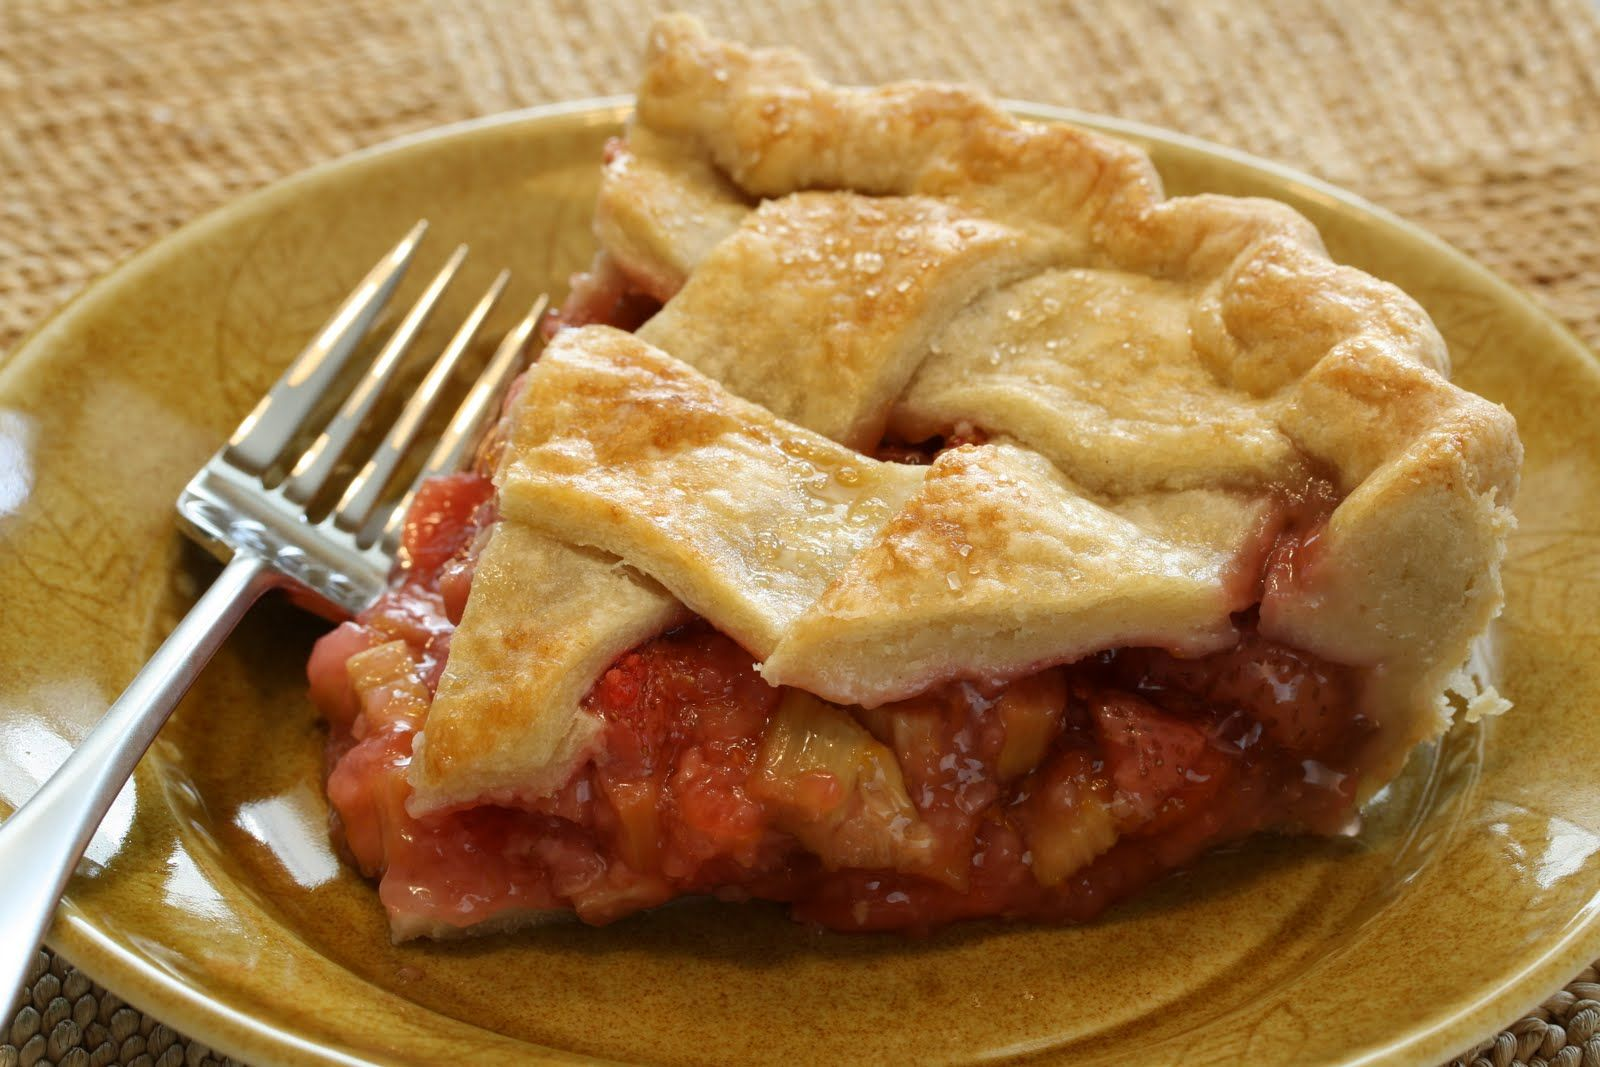 Pie No. 21 - Strawberry Rhubarb Pie - Saving Room for Dessert